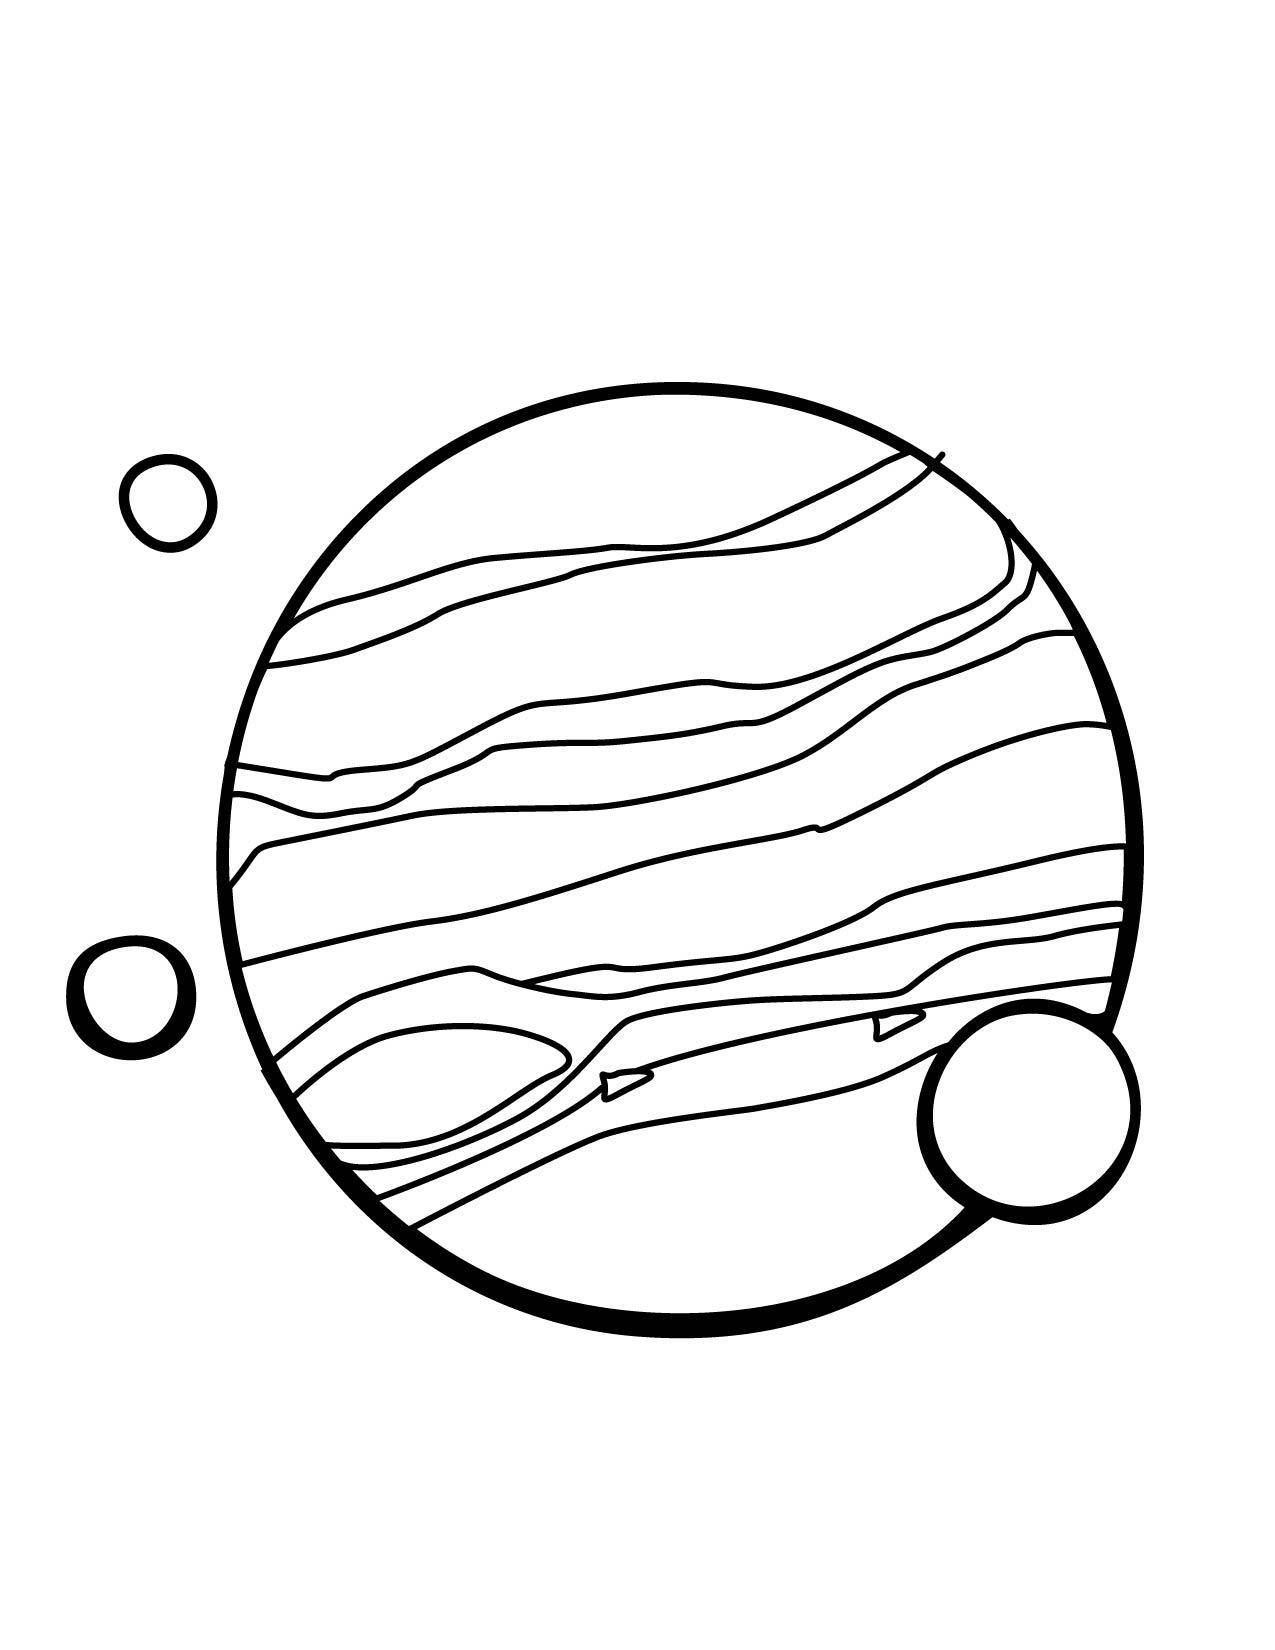 jupiter planet line drawings - photo #8